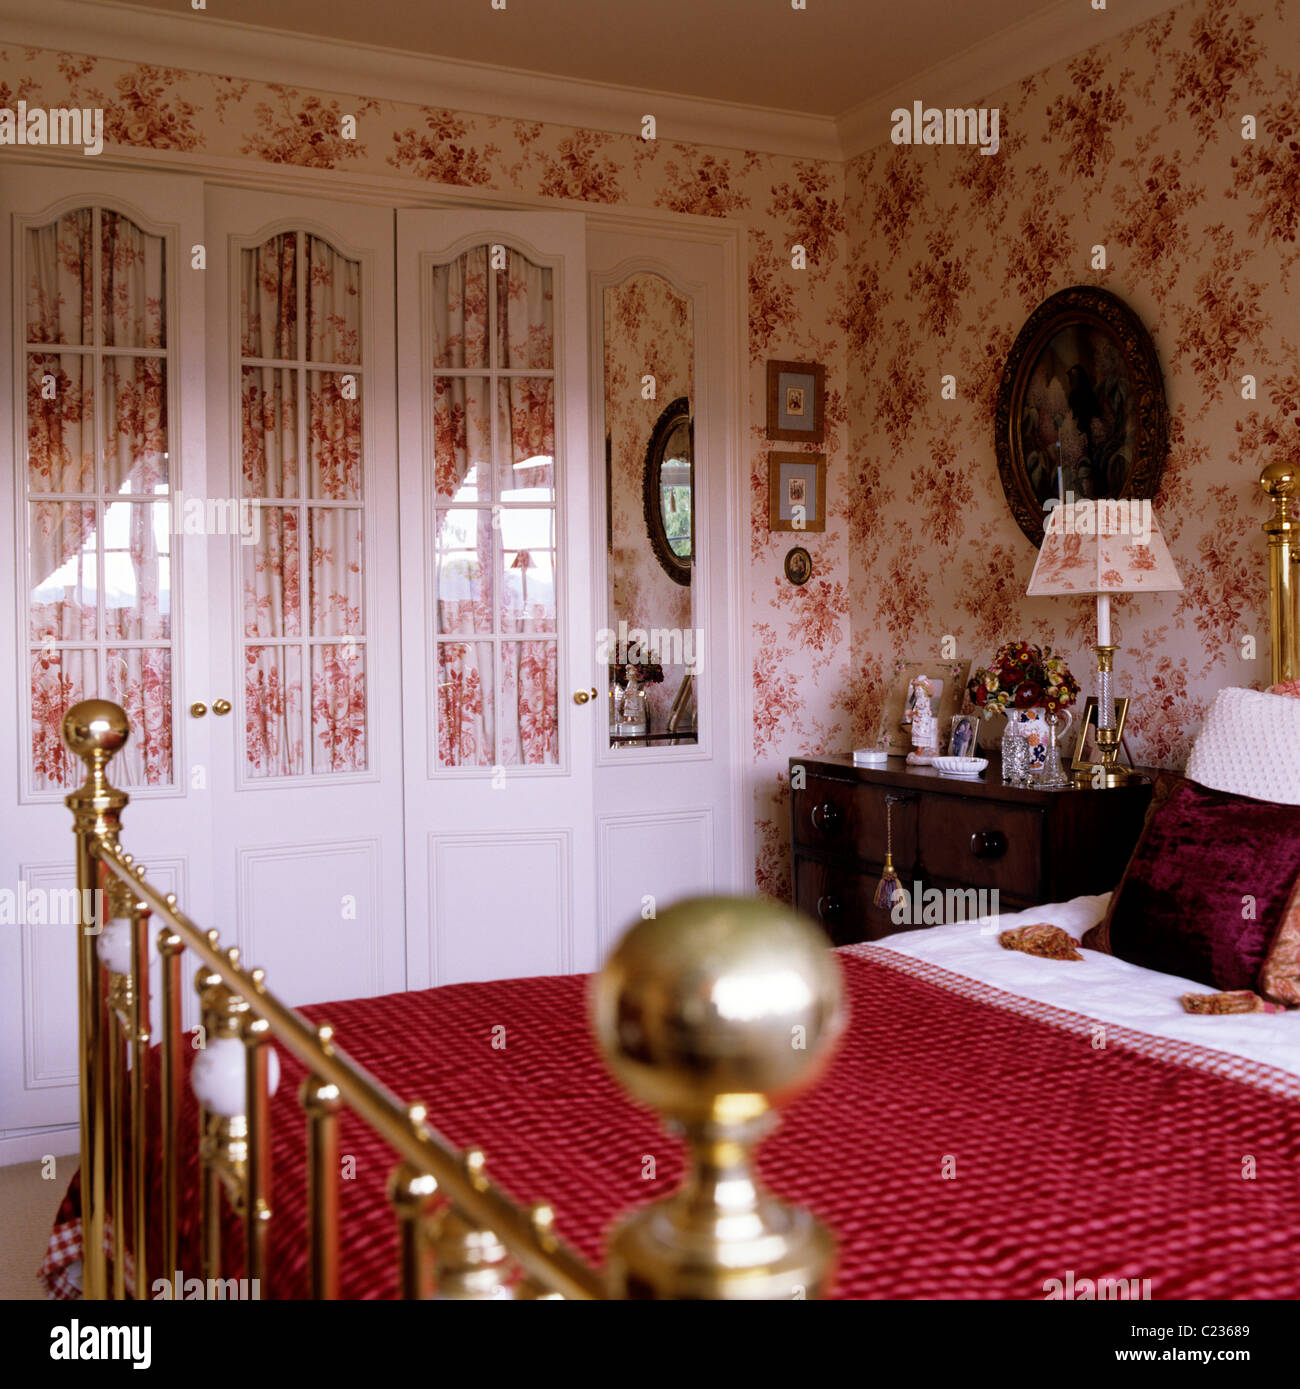 Red Wallpaper For Bedroom Red Quilt On Brass Framed Bed In Bedroom With Toile De Jouy